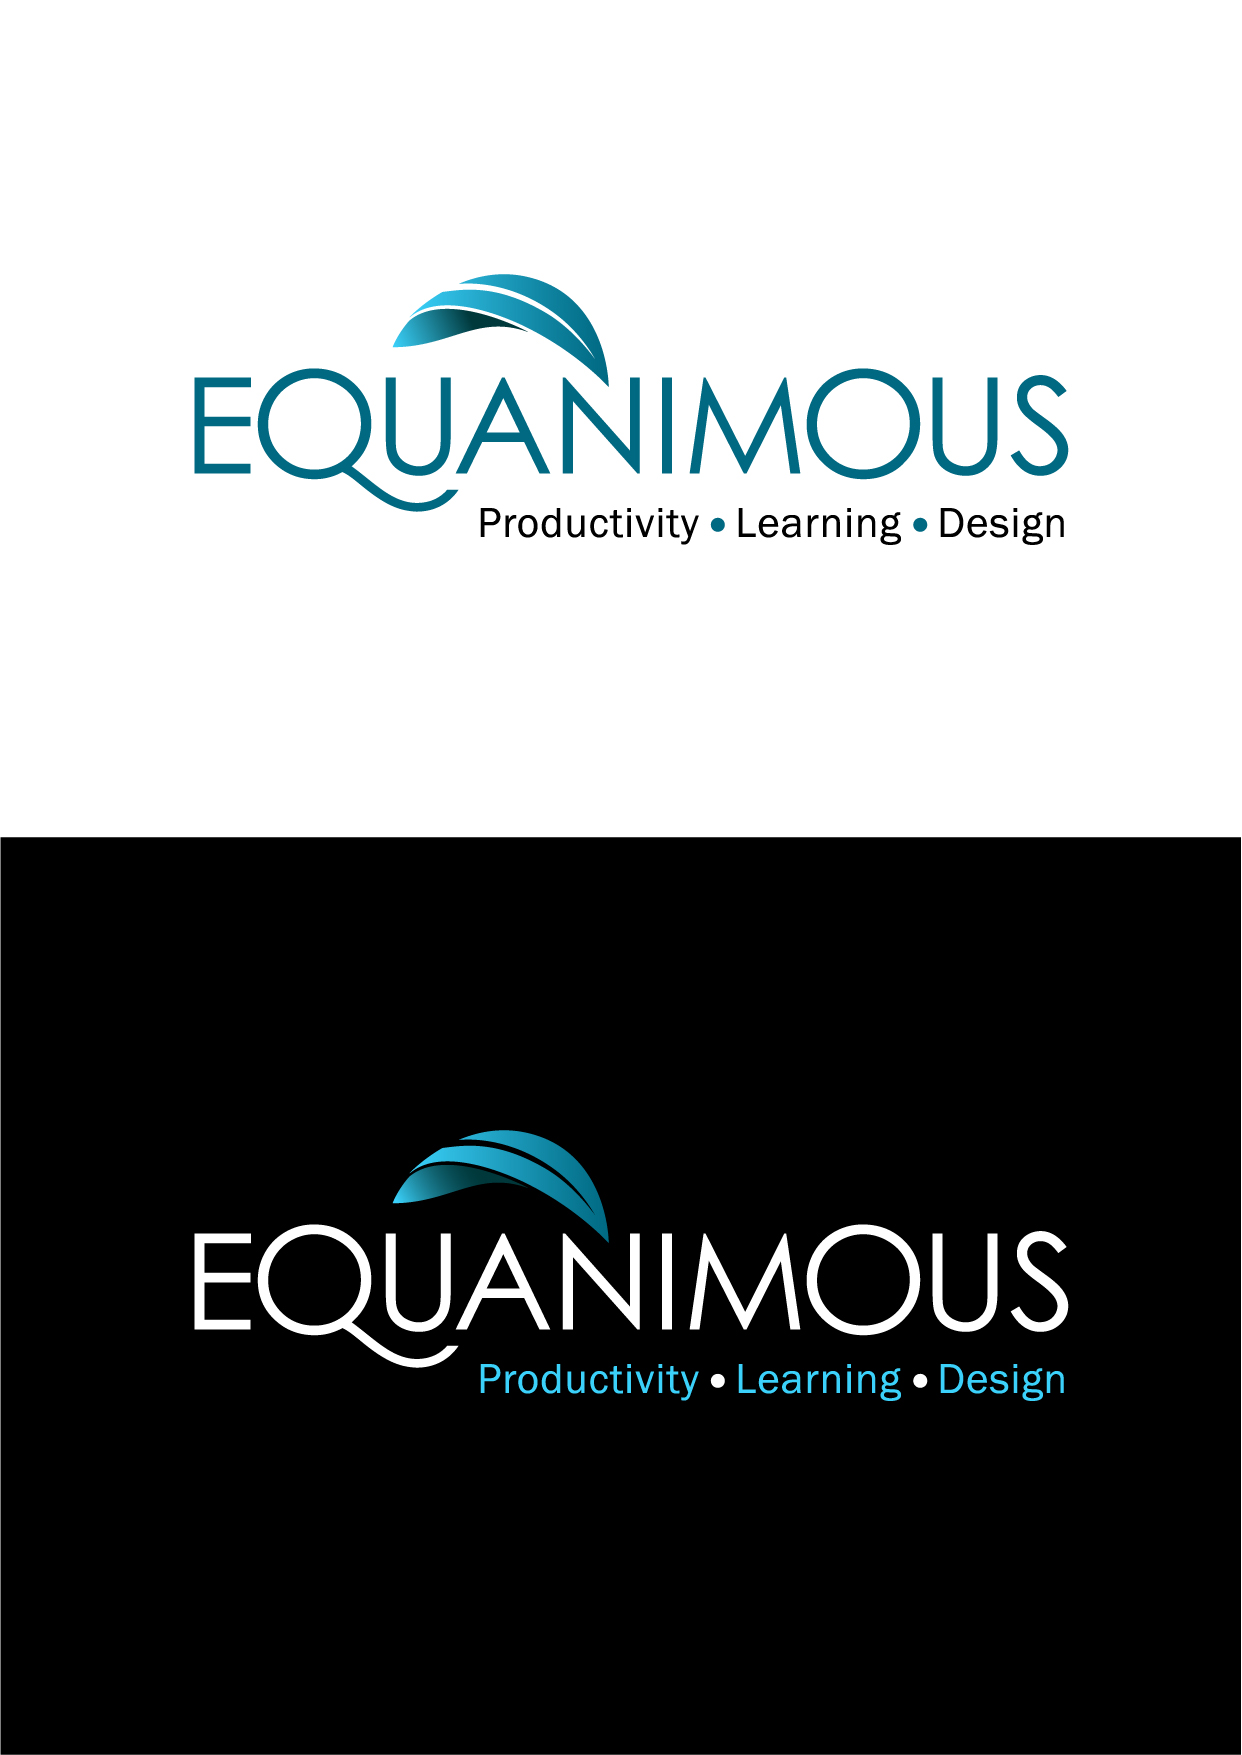 Logo Design by Wilfredo Mendoza - Entry No. 348 in the Logo Design Contest Logo Design : EQUANIMOUS : Productivity | Learning | Design.